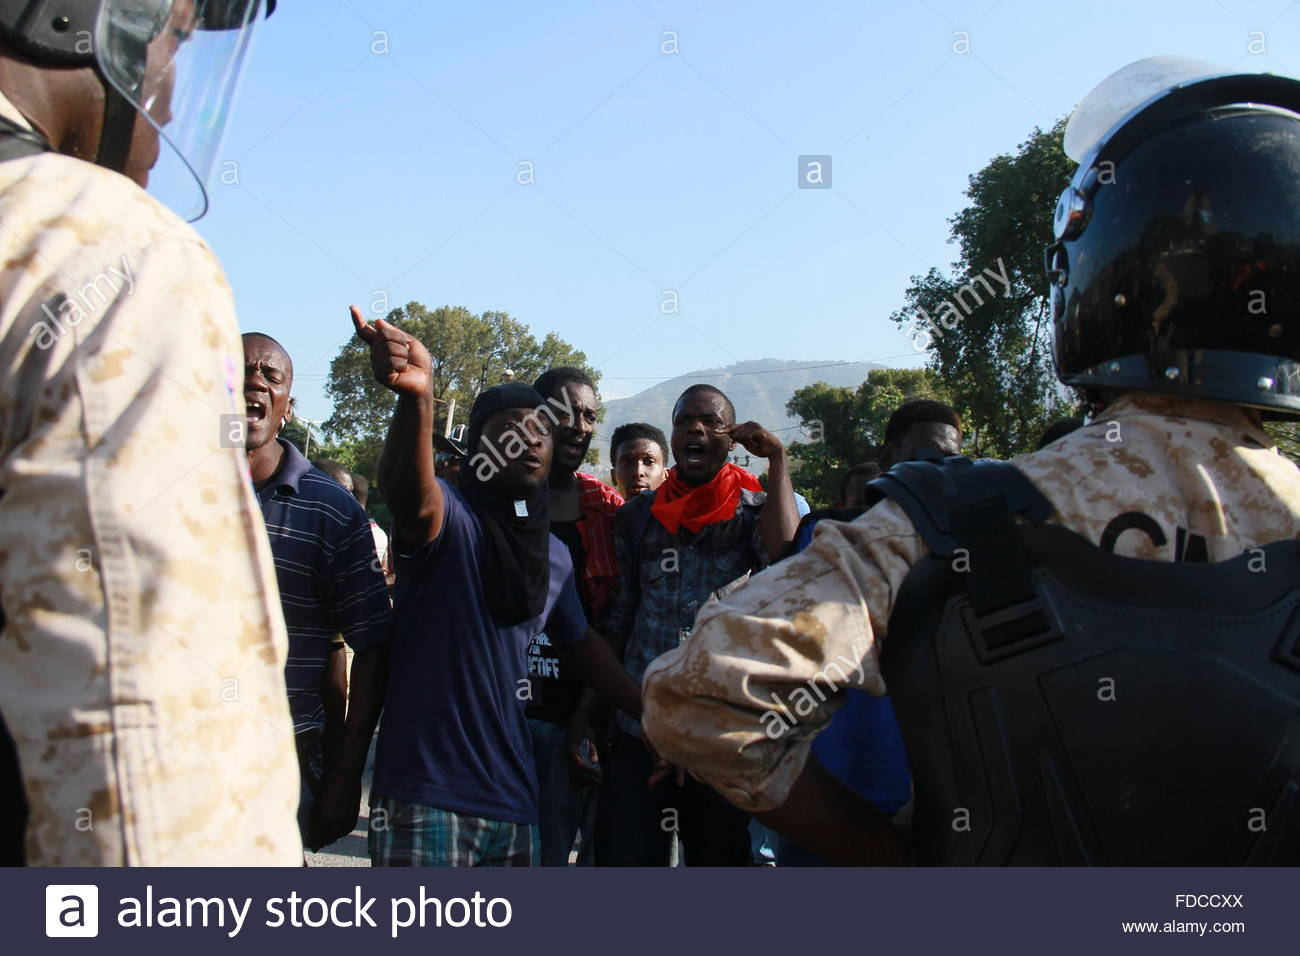 Haiti. January 29th, 2016. HAITI, Port-au-Prince: Demonstrators shout at police officers holding the police perimeter - Stock Image